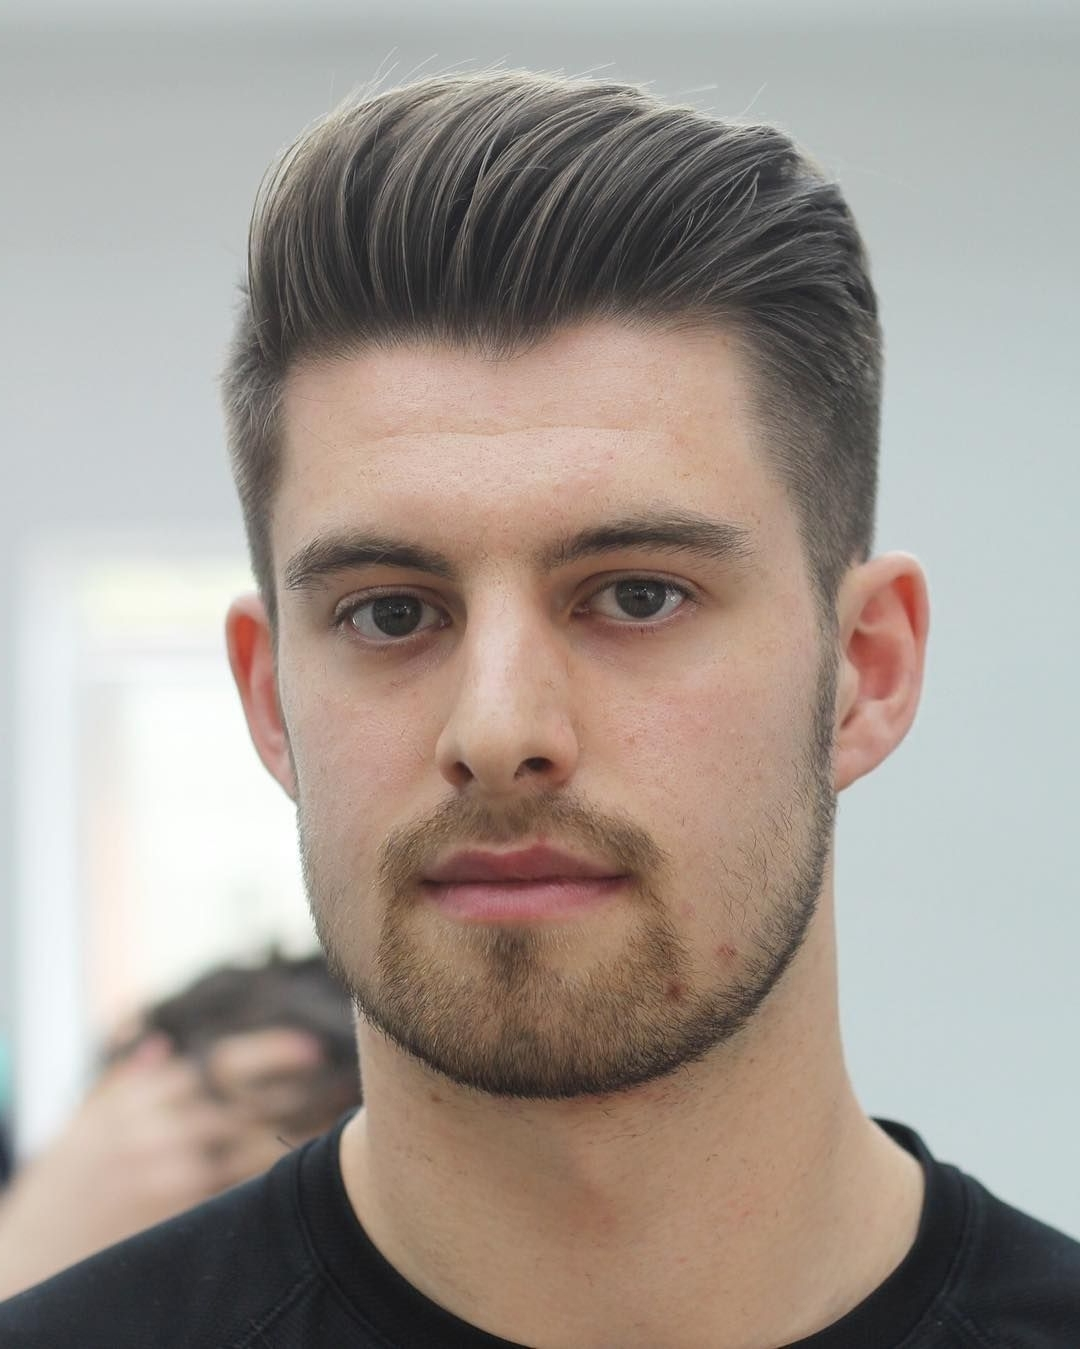 Pin On Hairstyles Medium Length Hairstyles For Guys